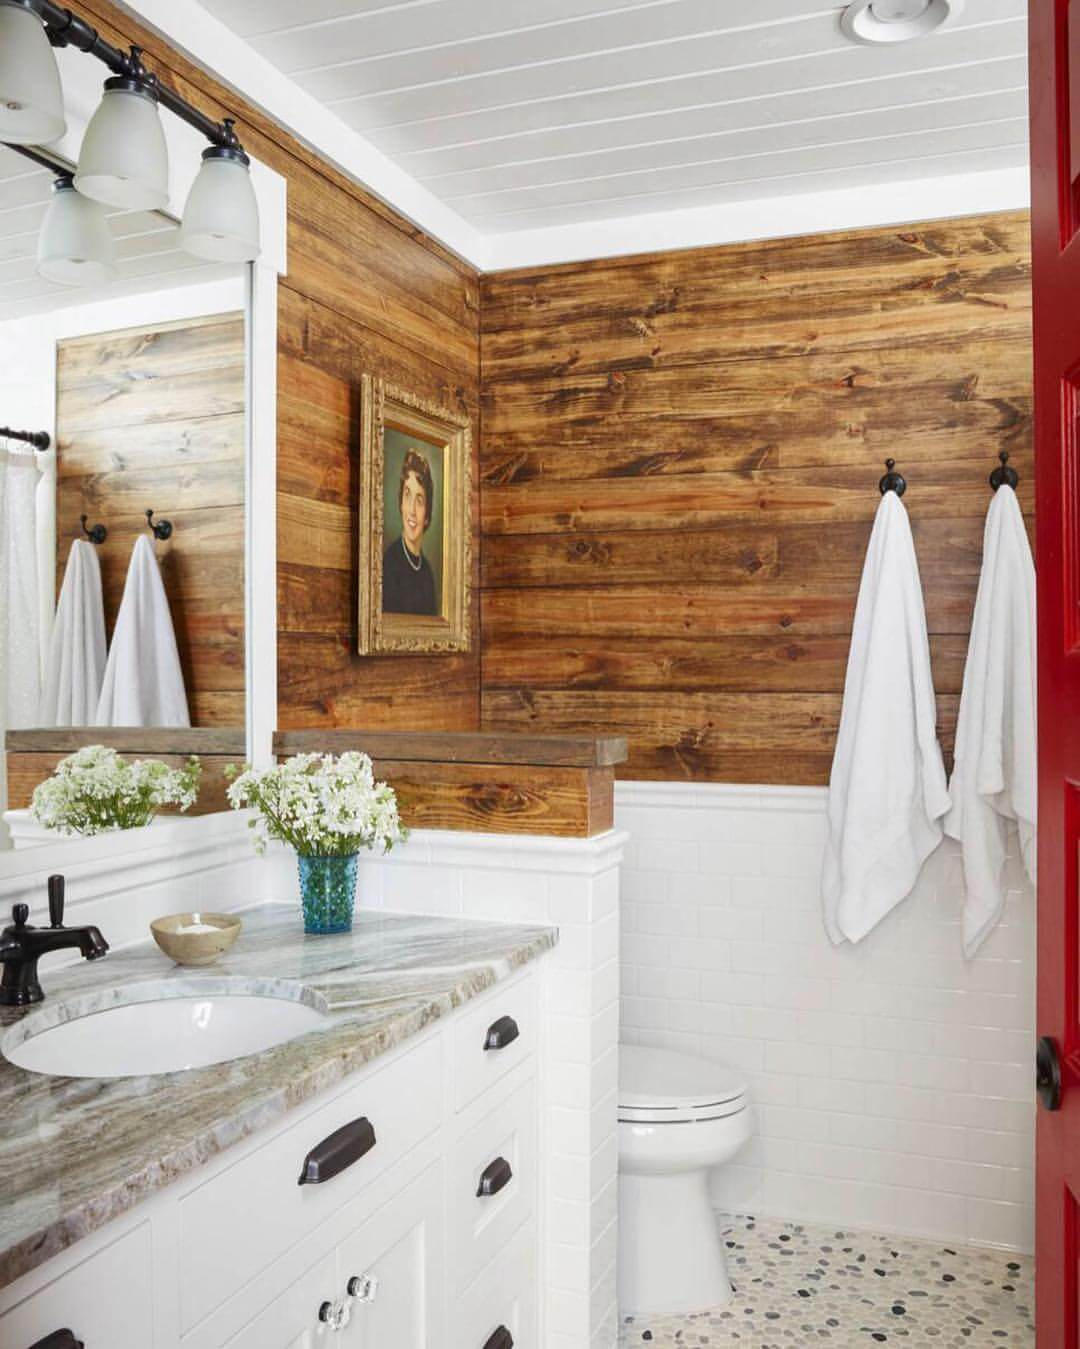 27 Best Rustic Shiplap Decor Ideas and Designs for 2020